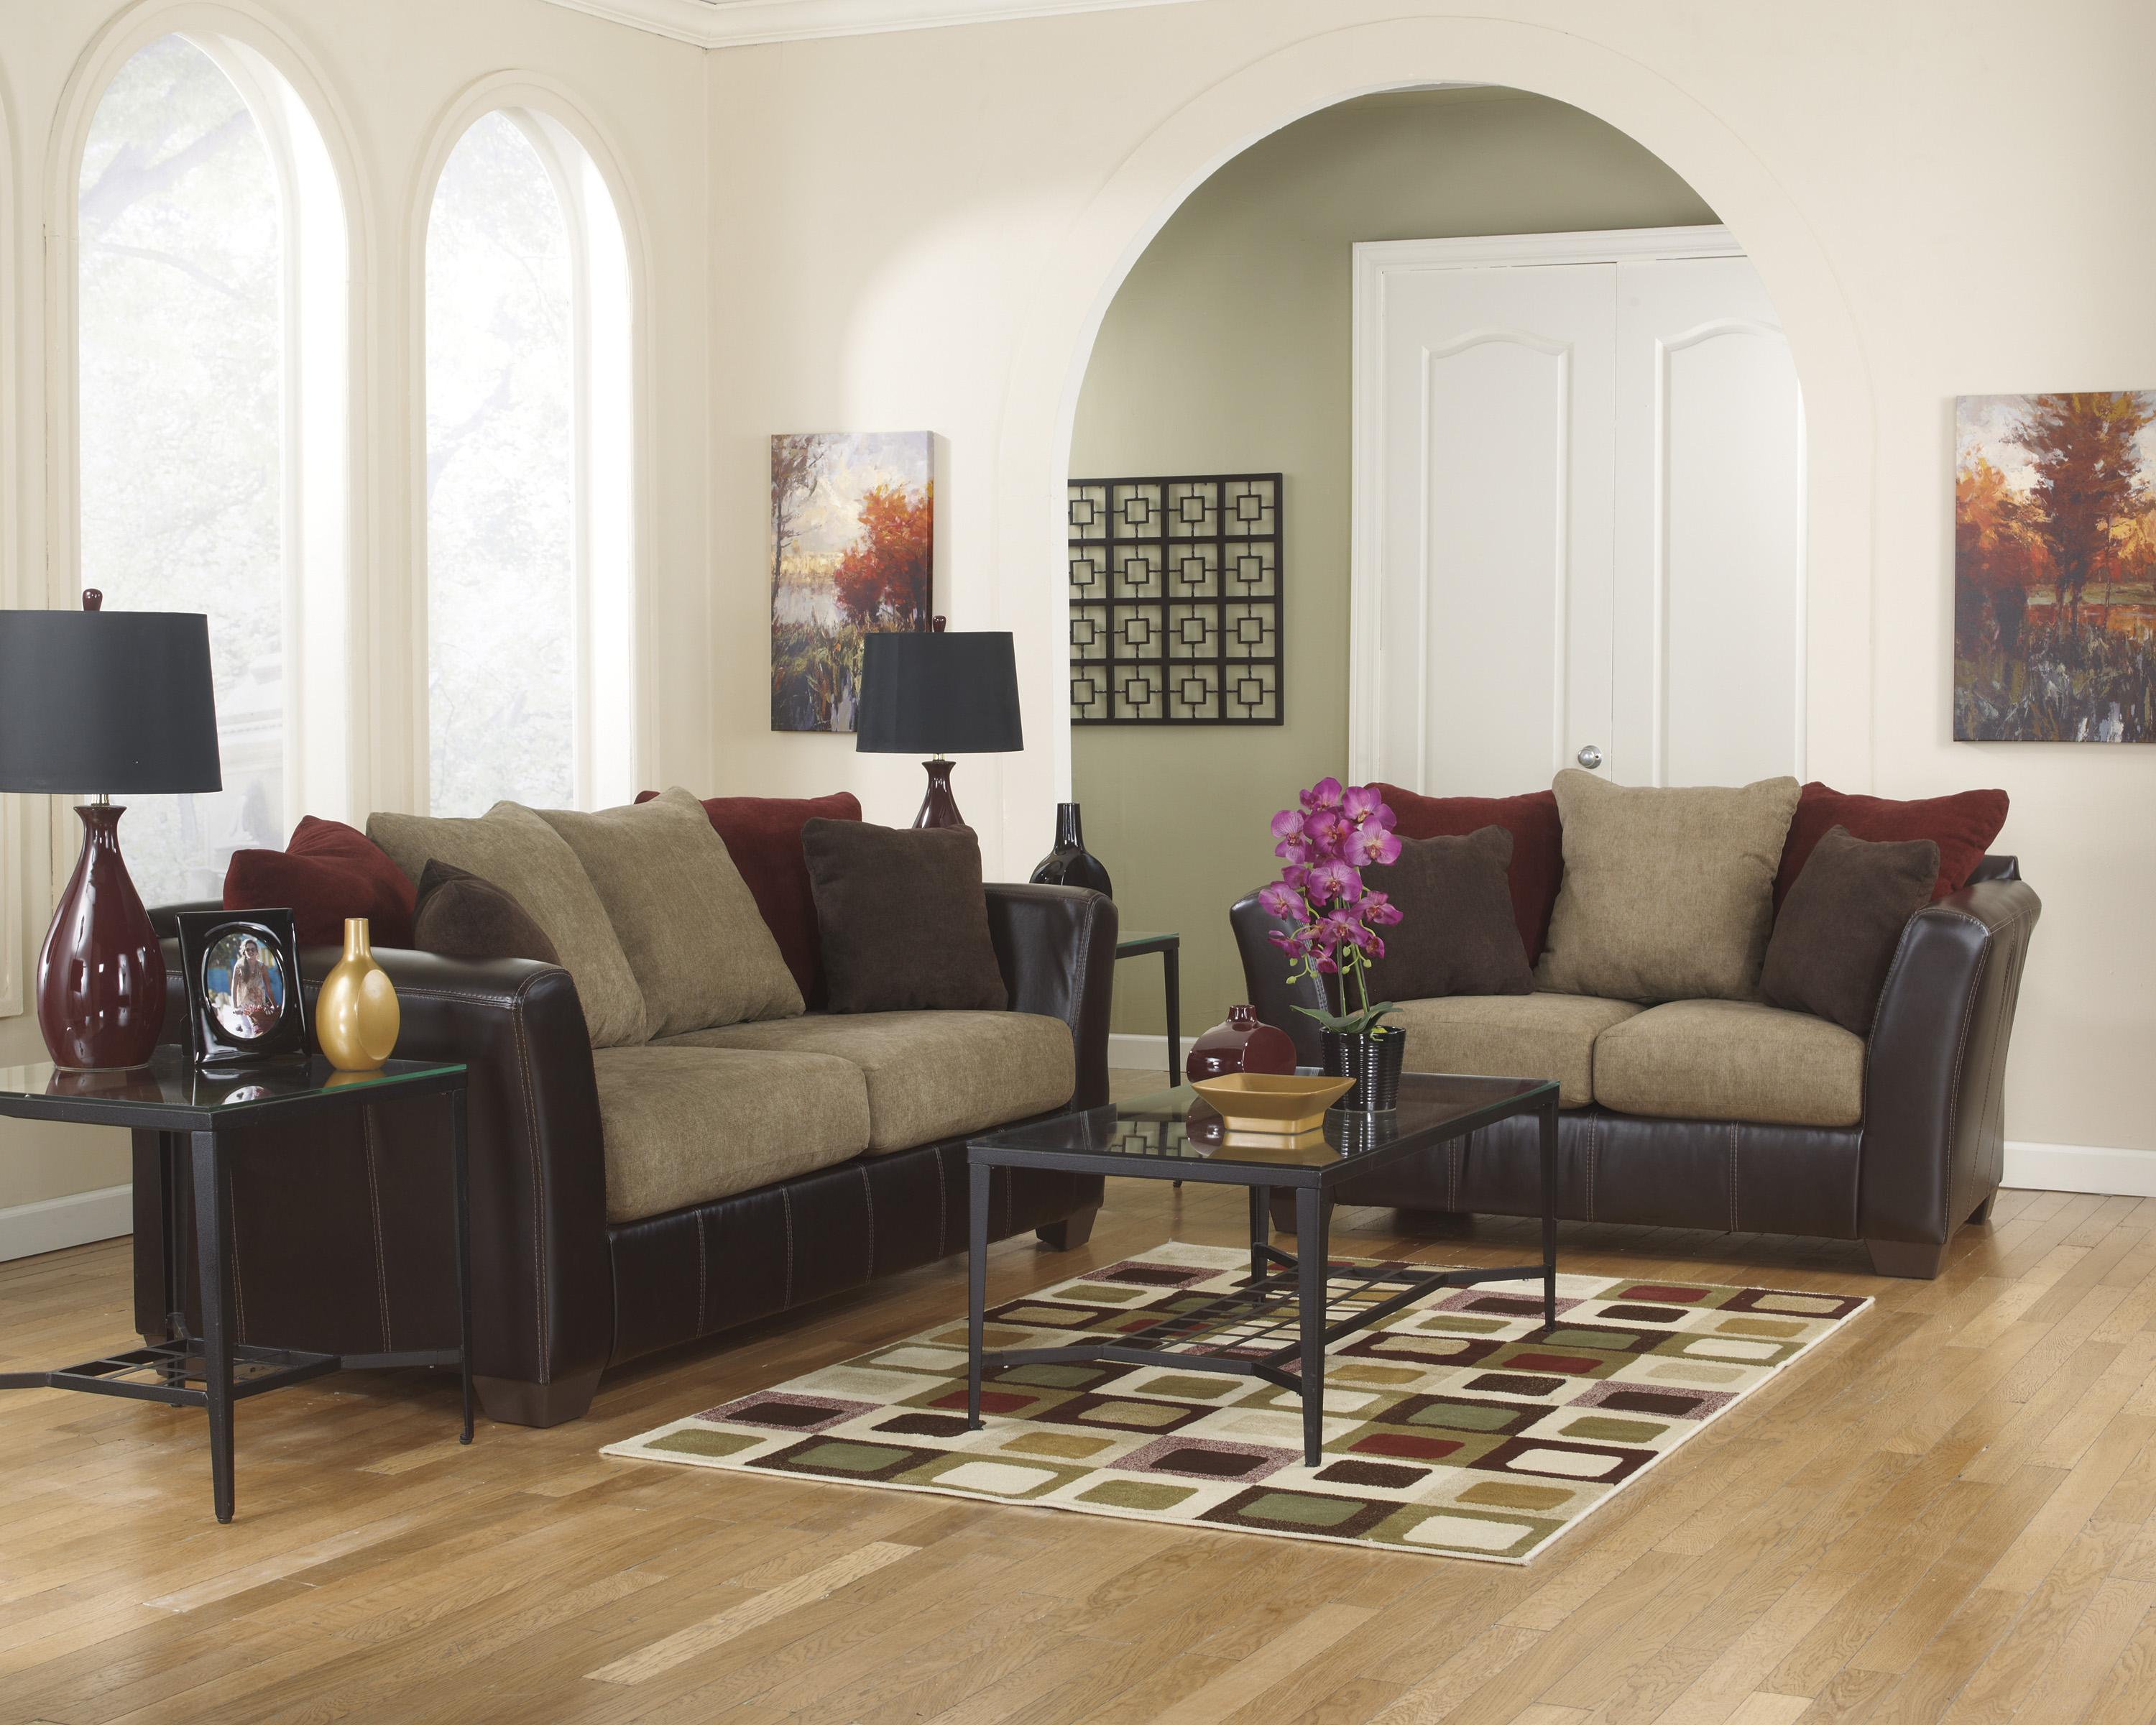 Ashley Furniture Sanya - Mocha Stationary Living Room Group - Item Number: 28400 Living Room Group 1